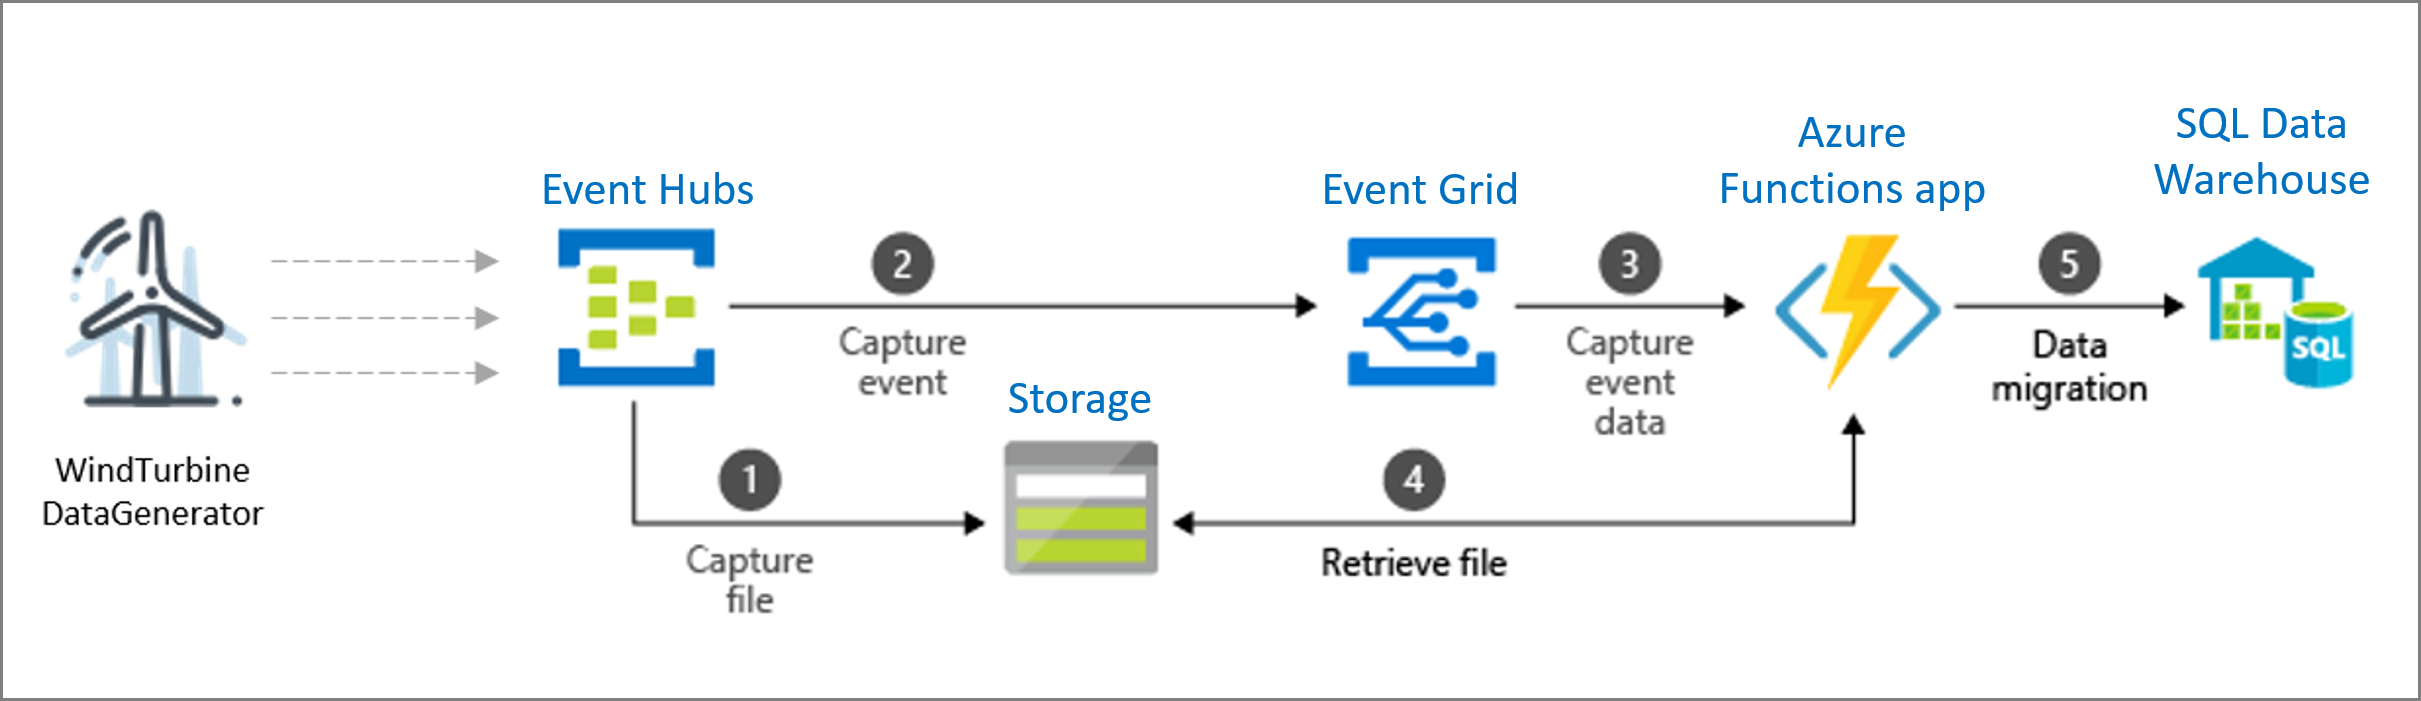 Microsoft Azure event grid integration overview